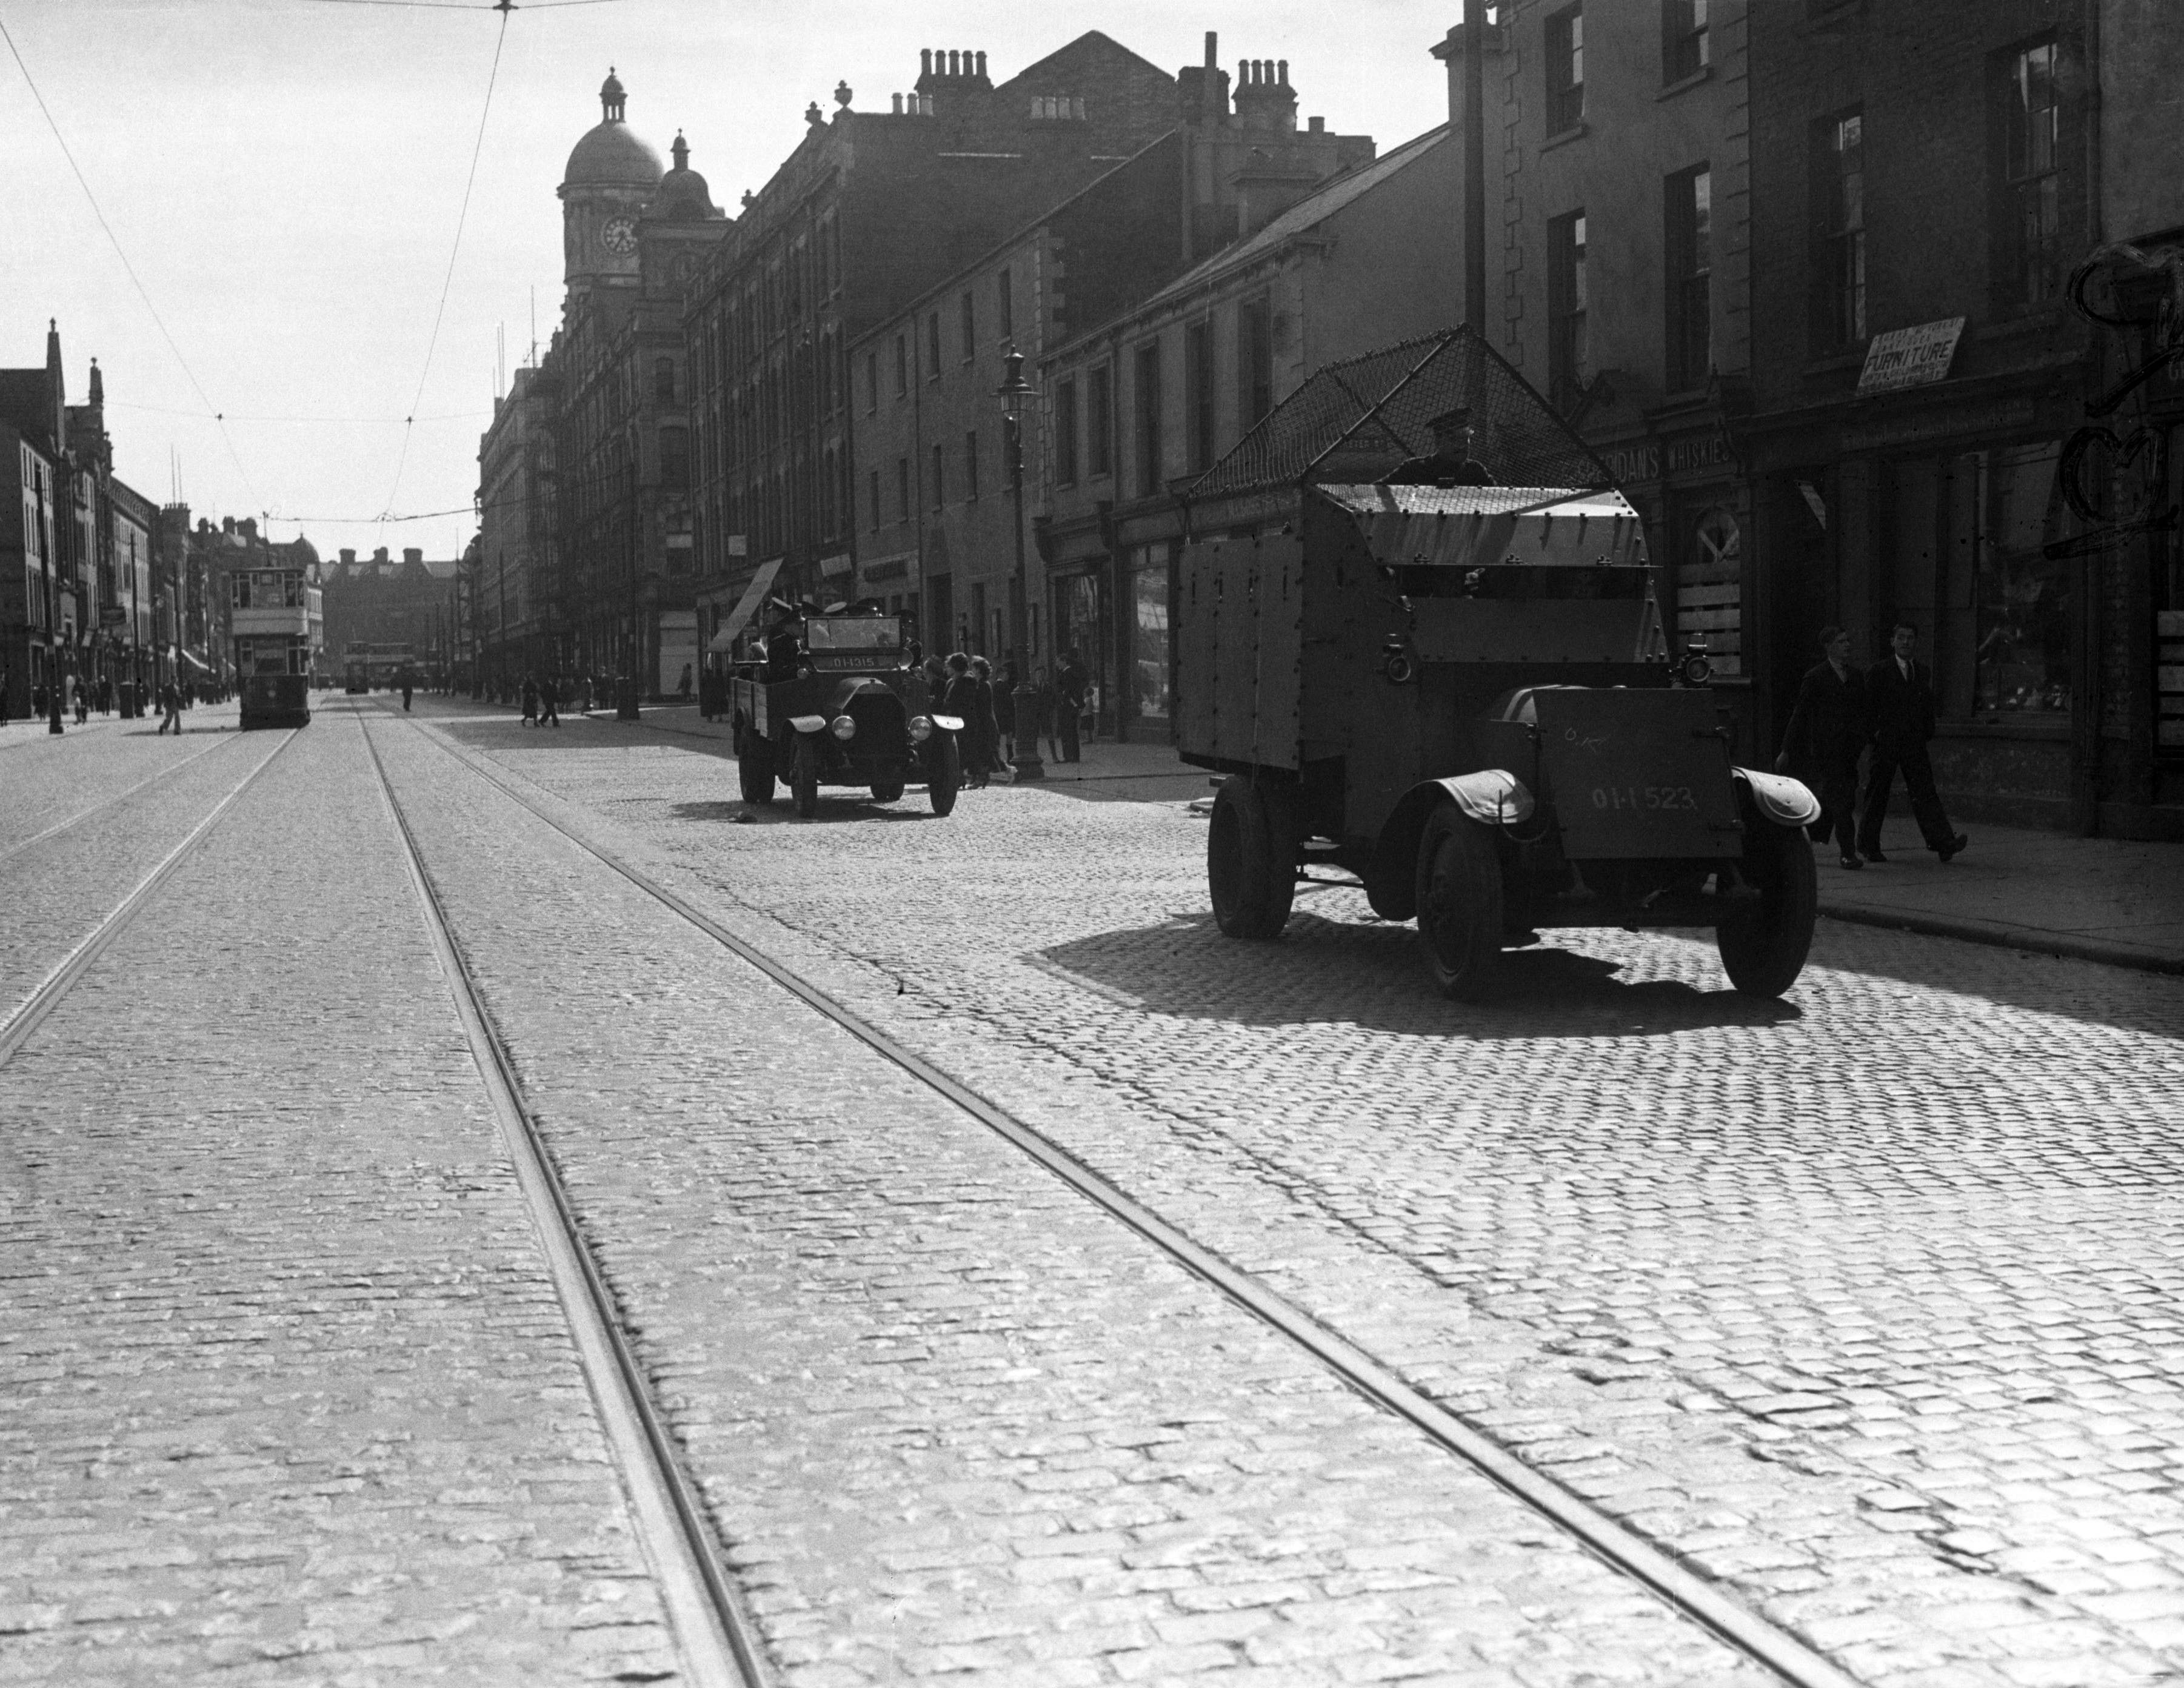 An armoured car fitted with wire netting to protect the crew patrolling a street in Belfast. Fresh trouble broke out in Belfast on July16, 1935 when a man was wounded by a bullet at the funeral of James Lyttle, an Orangeman killed during Saturday's shooting. A street battle followed and many people were injured and three houses burned down. A detachment of military and armoured cars were rushed to the scene to quell the disturbance. (AP Photo/BEAD)